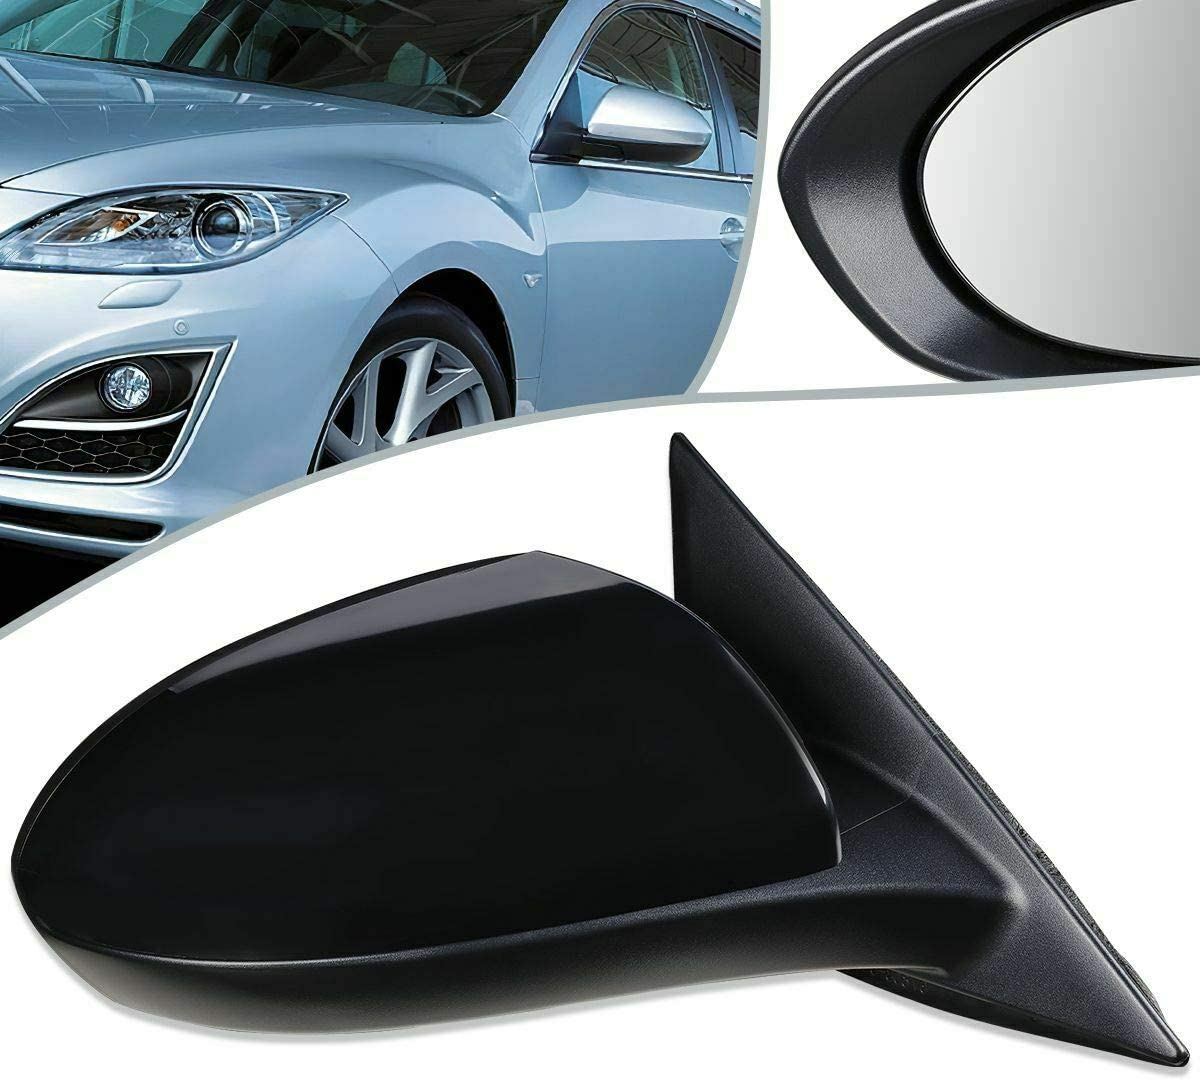 Powered Side Rear View Door Mirror OE Sedan RH Cheap Branded goods super special price MA13211636 Right